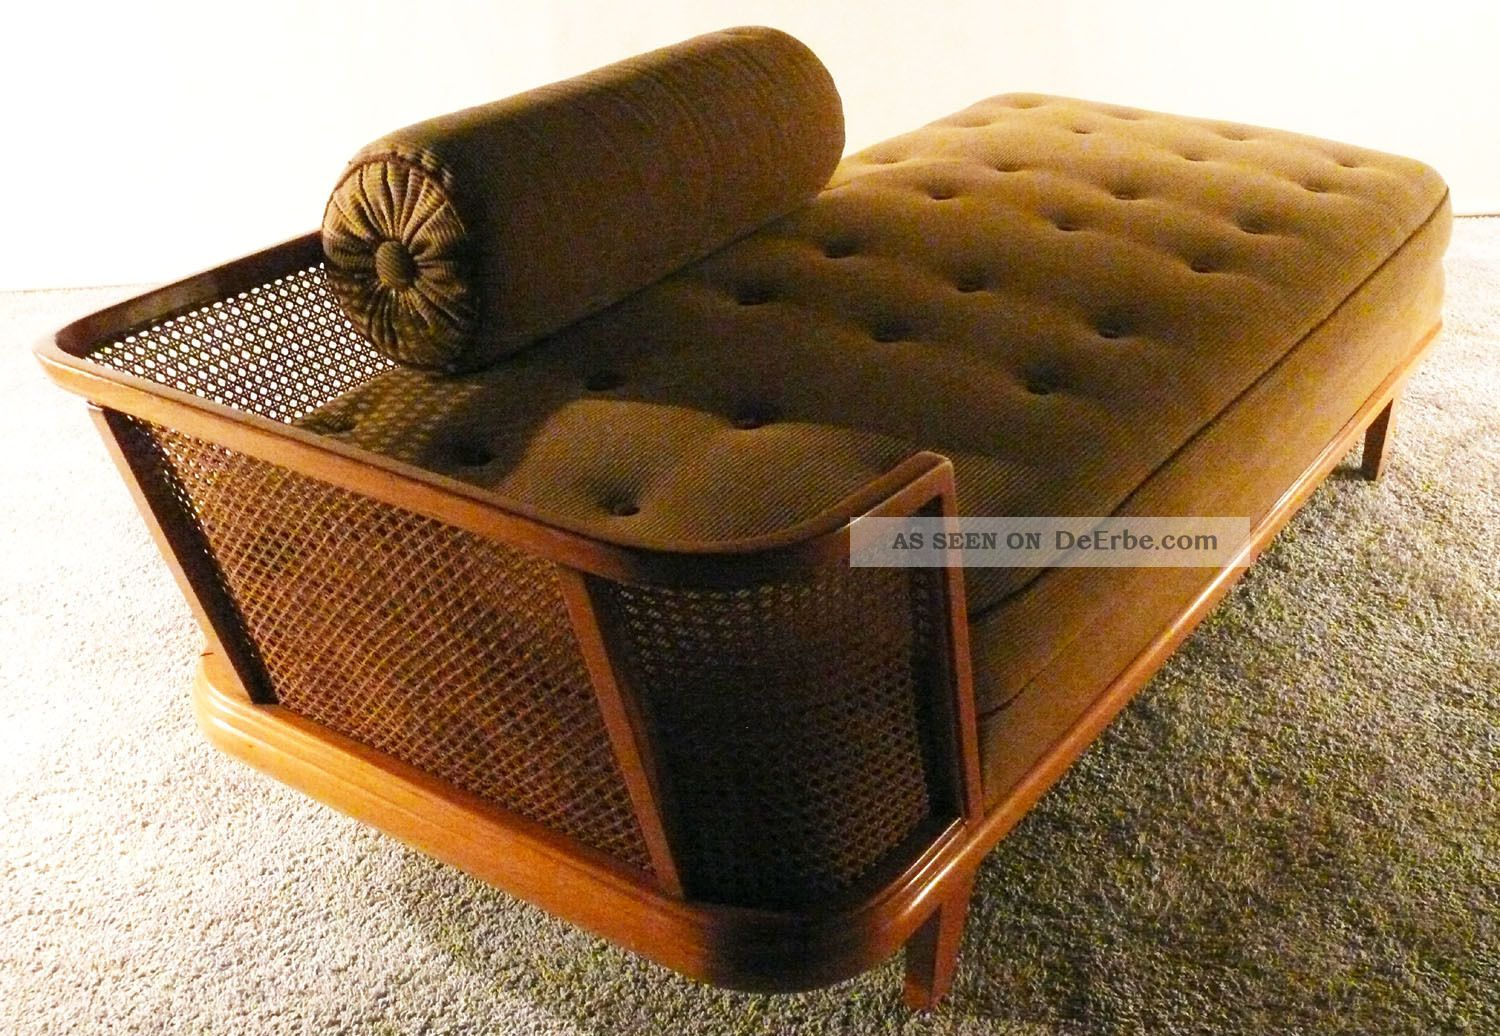 30er recamiere art deco daybed chaiselonge canape sofa. Black Bedroom Furniture Sets. Home Design Ideas